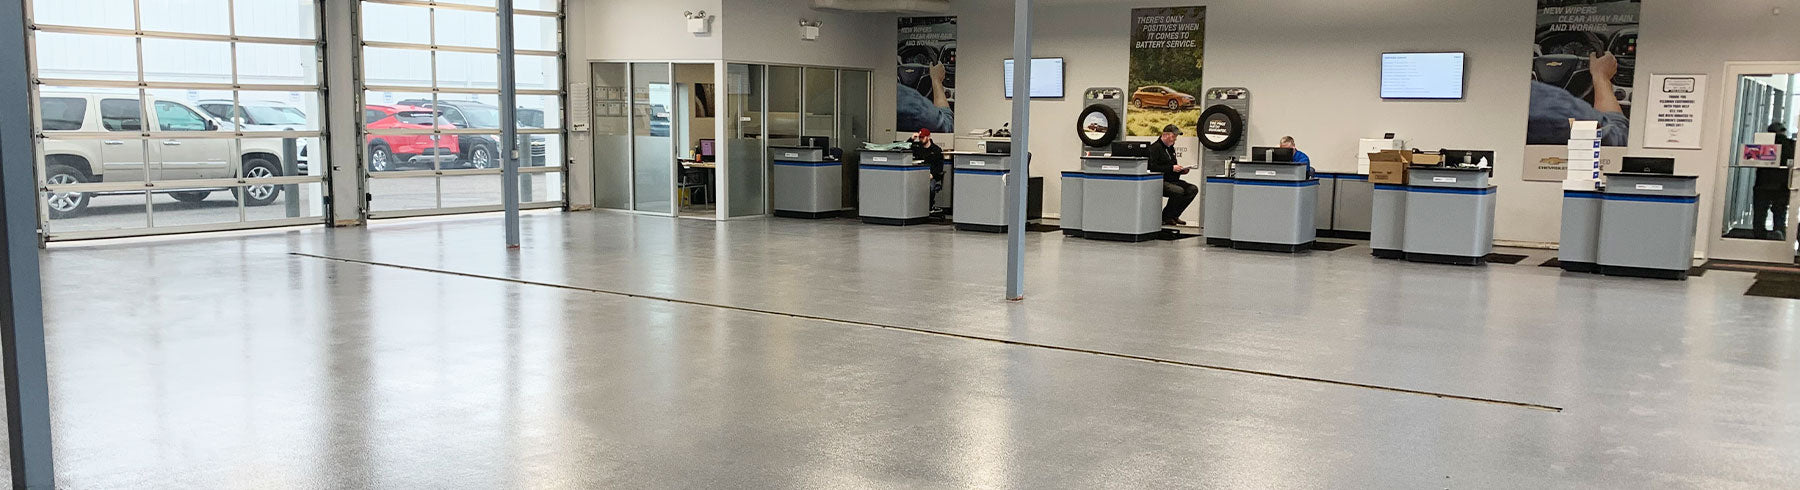 Auto Service Bay Drive Up Floor Coating